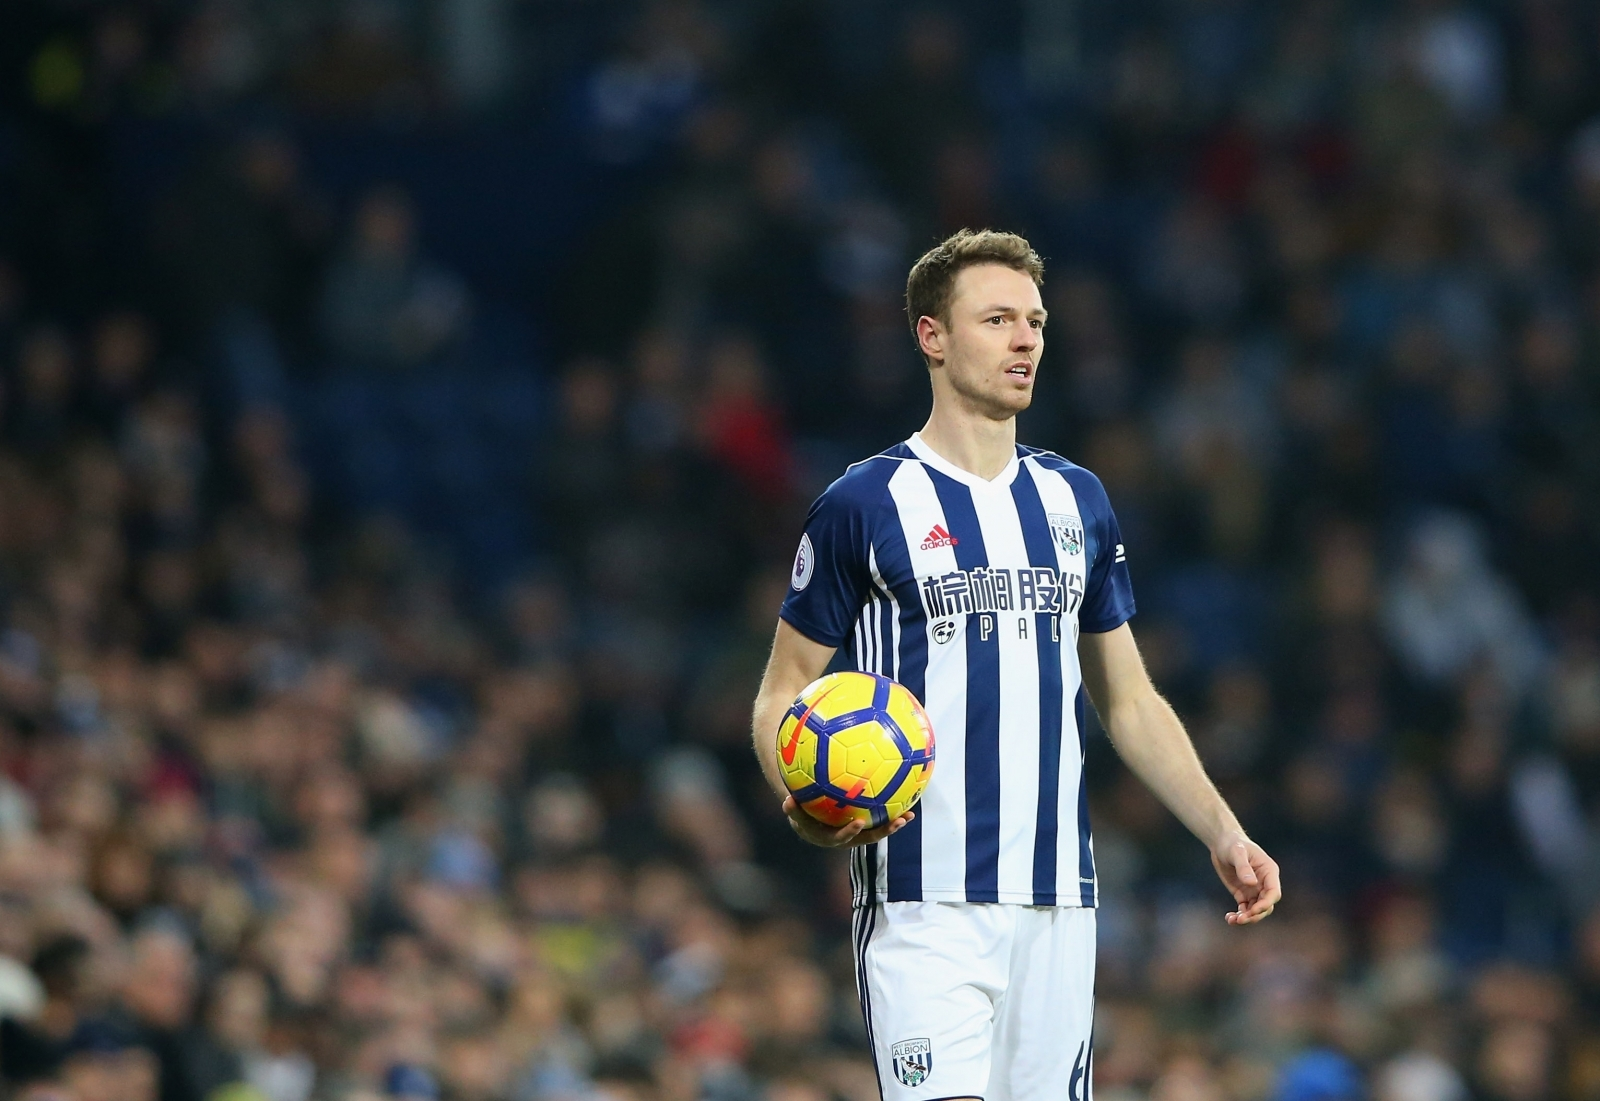 Evans available at the right price, says Pardew